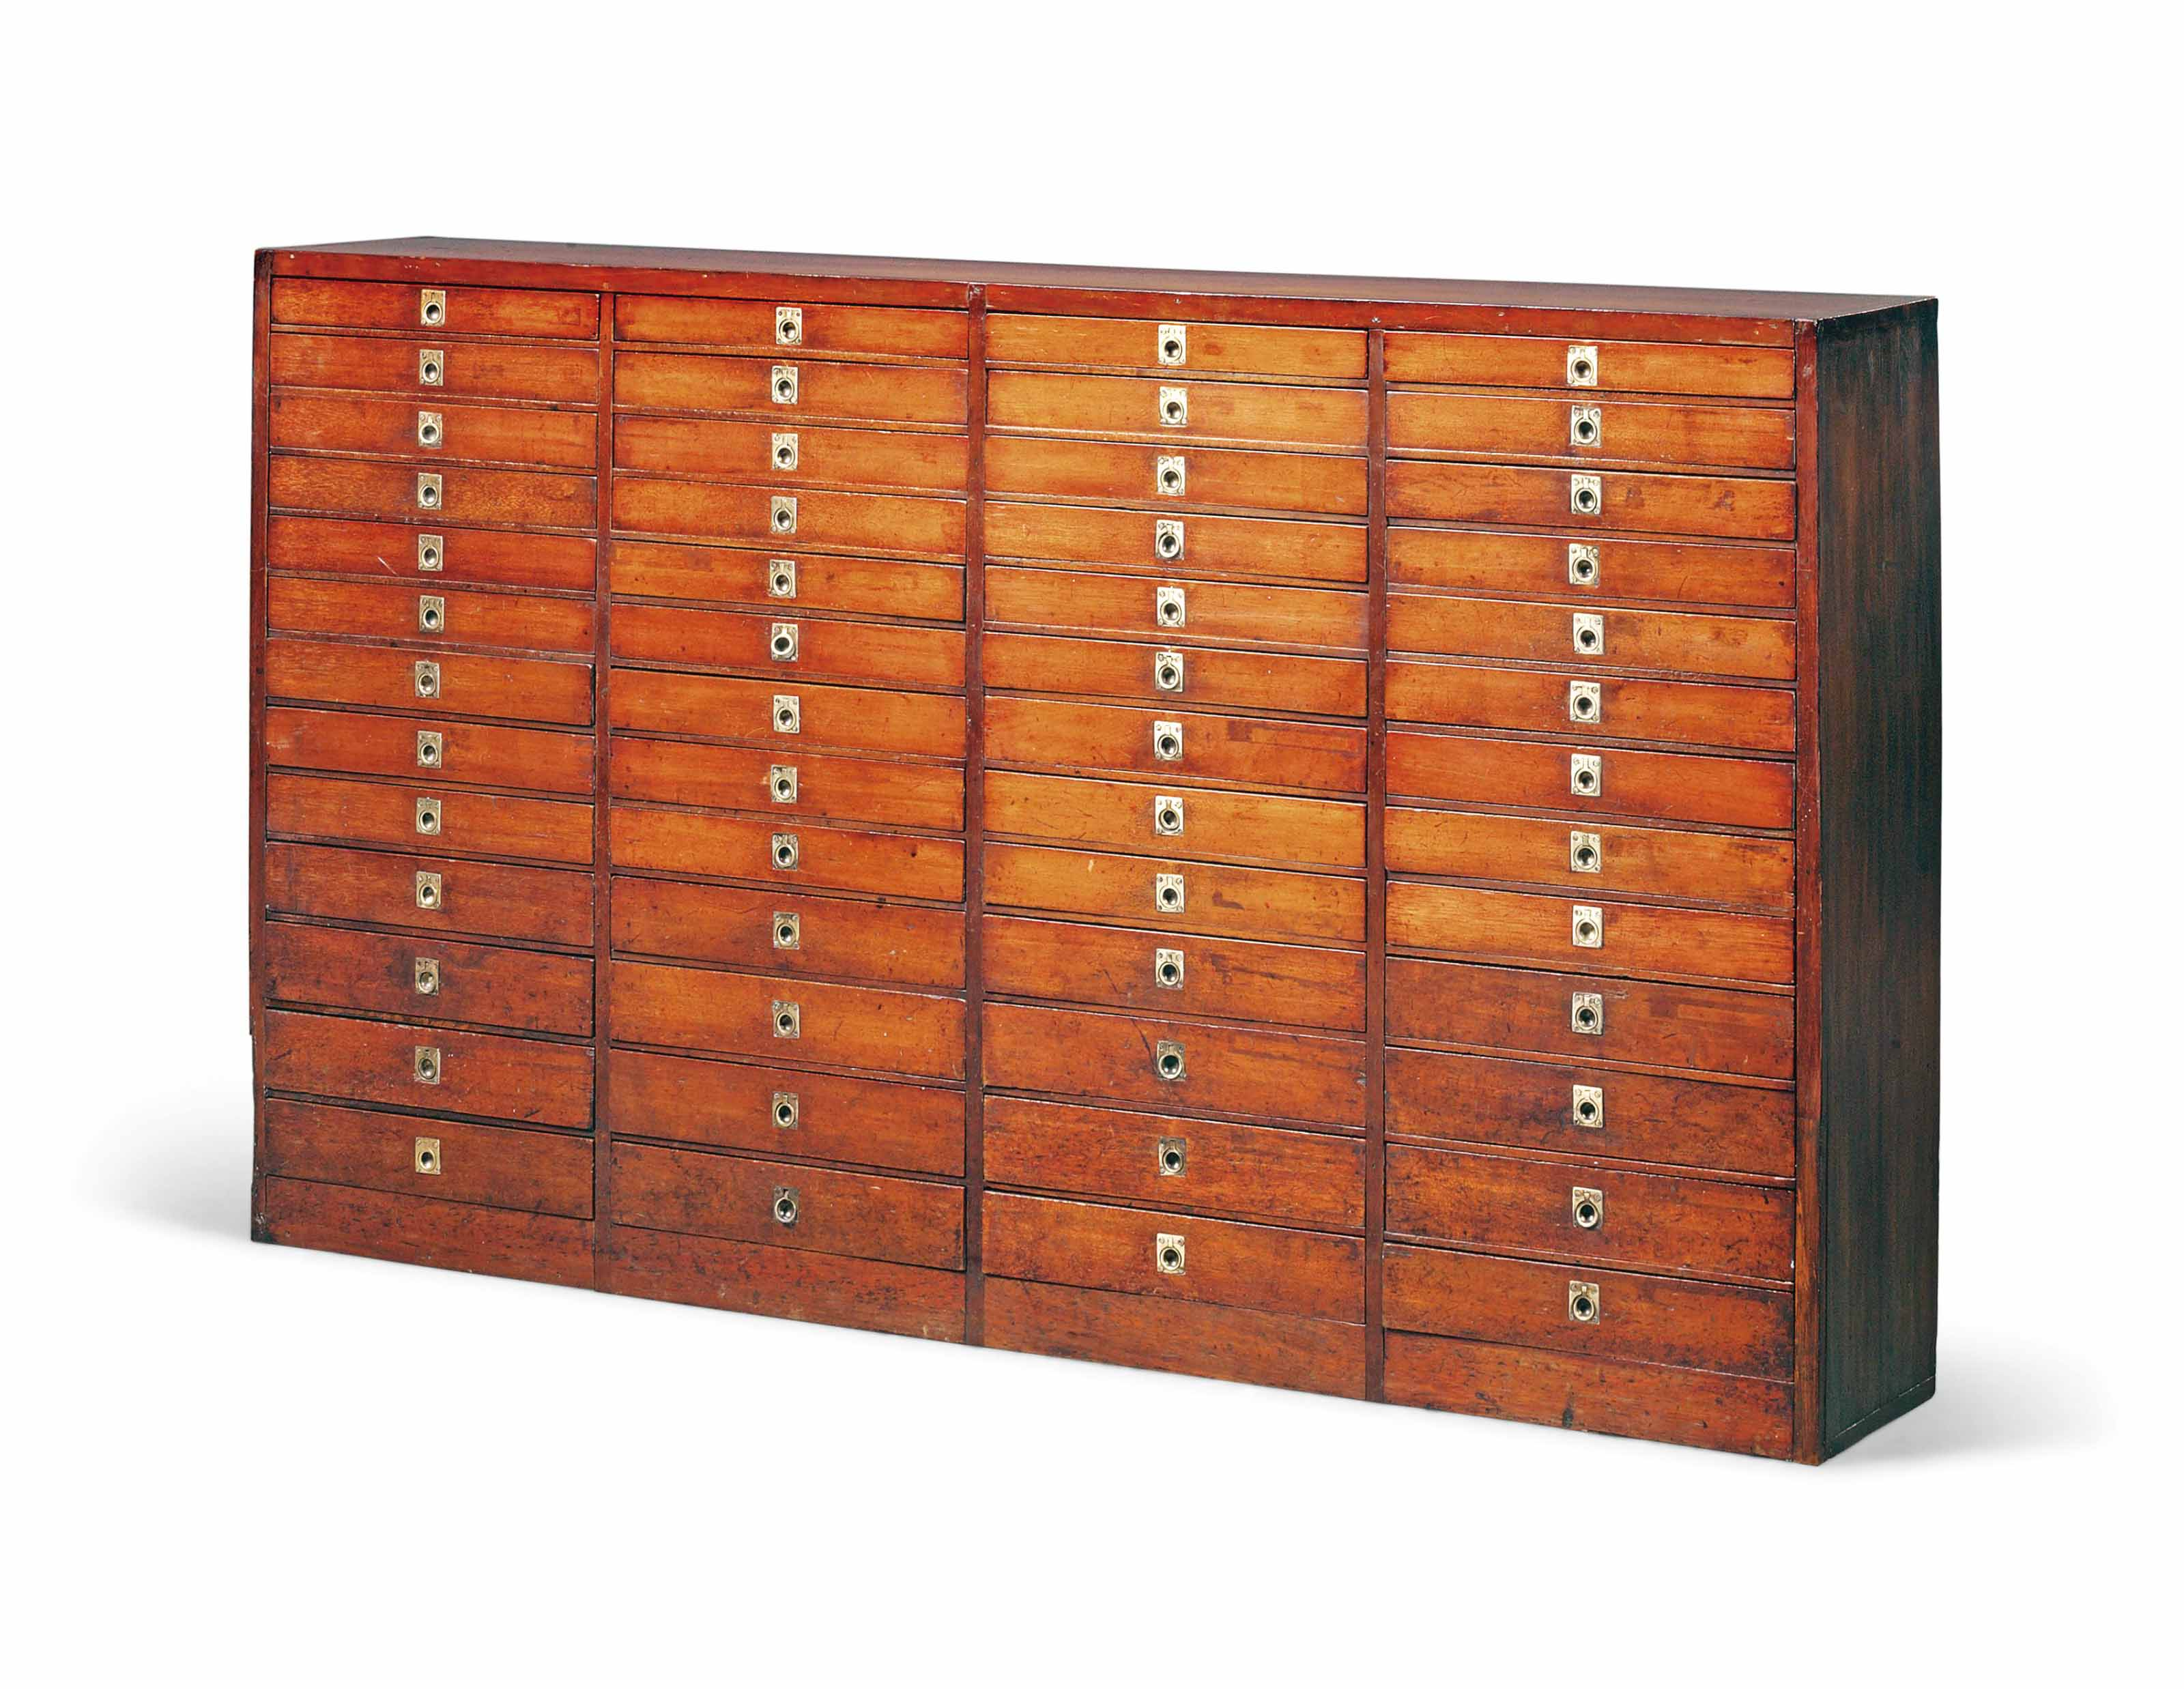 A MAHOGANY COLLECTOR'S CABINET